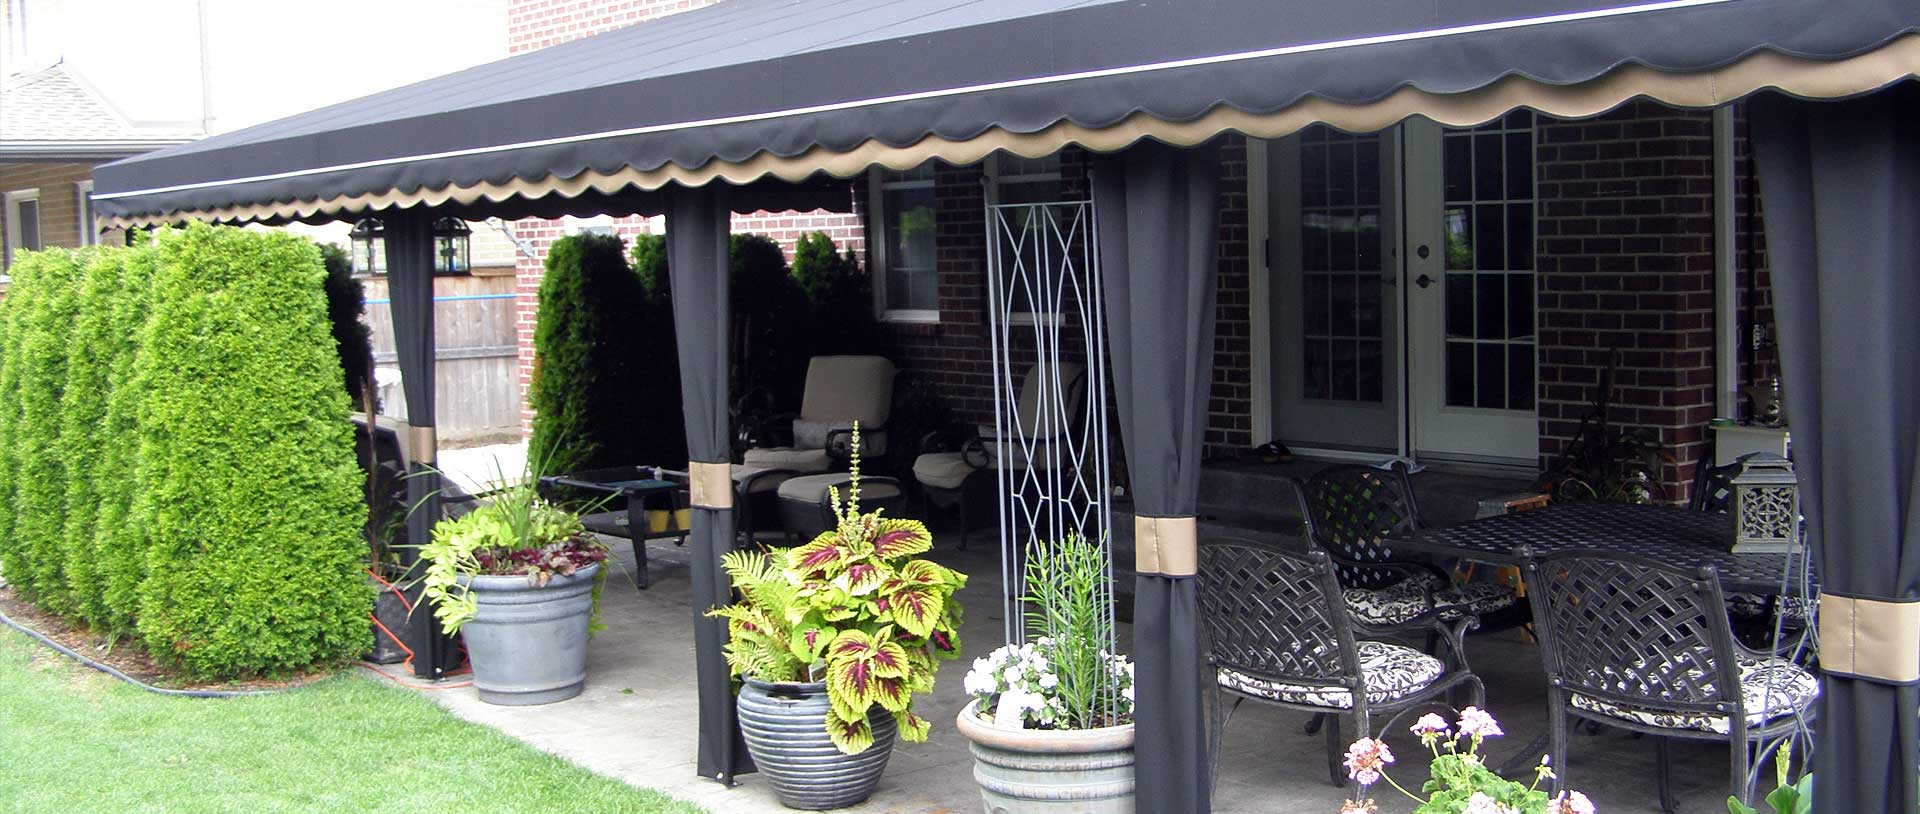 canopy polycarbonate outdoor warranty of awning awnings year pin aluminium set usd